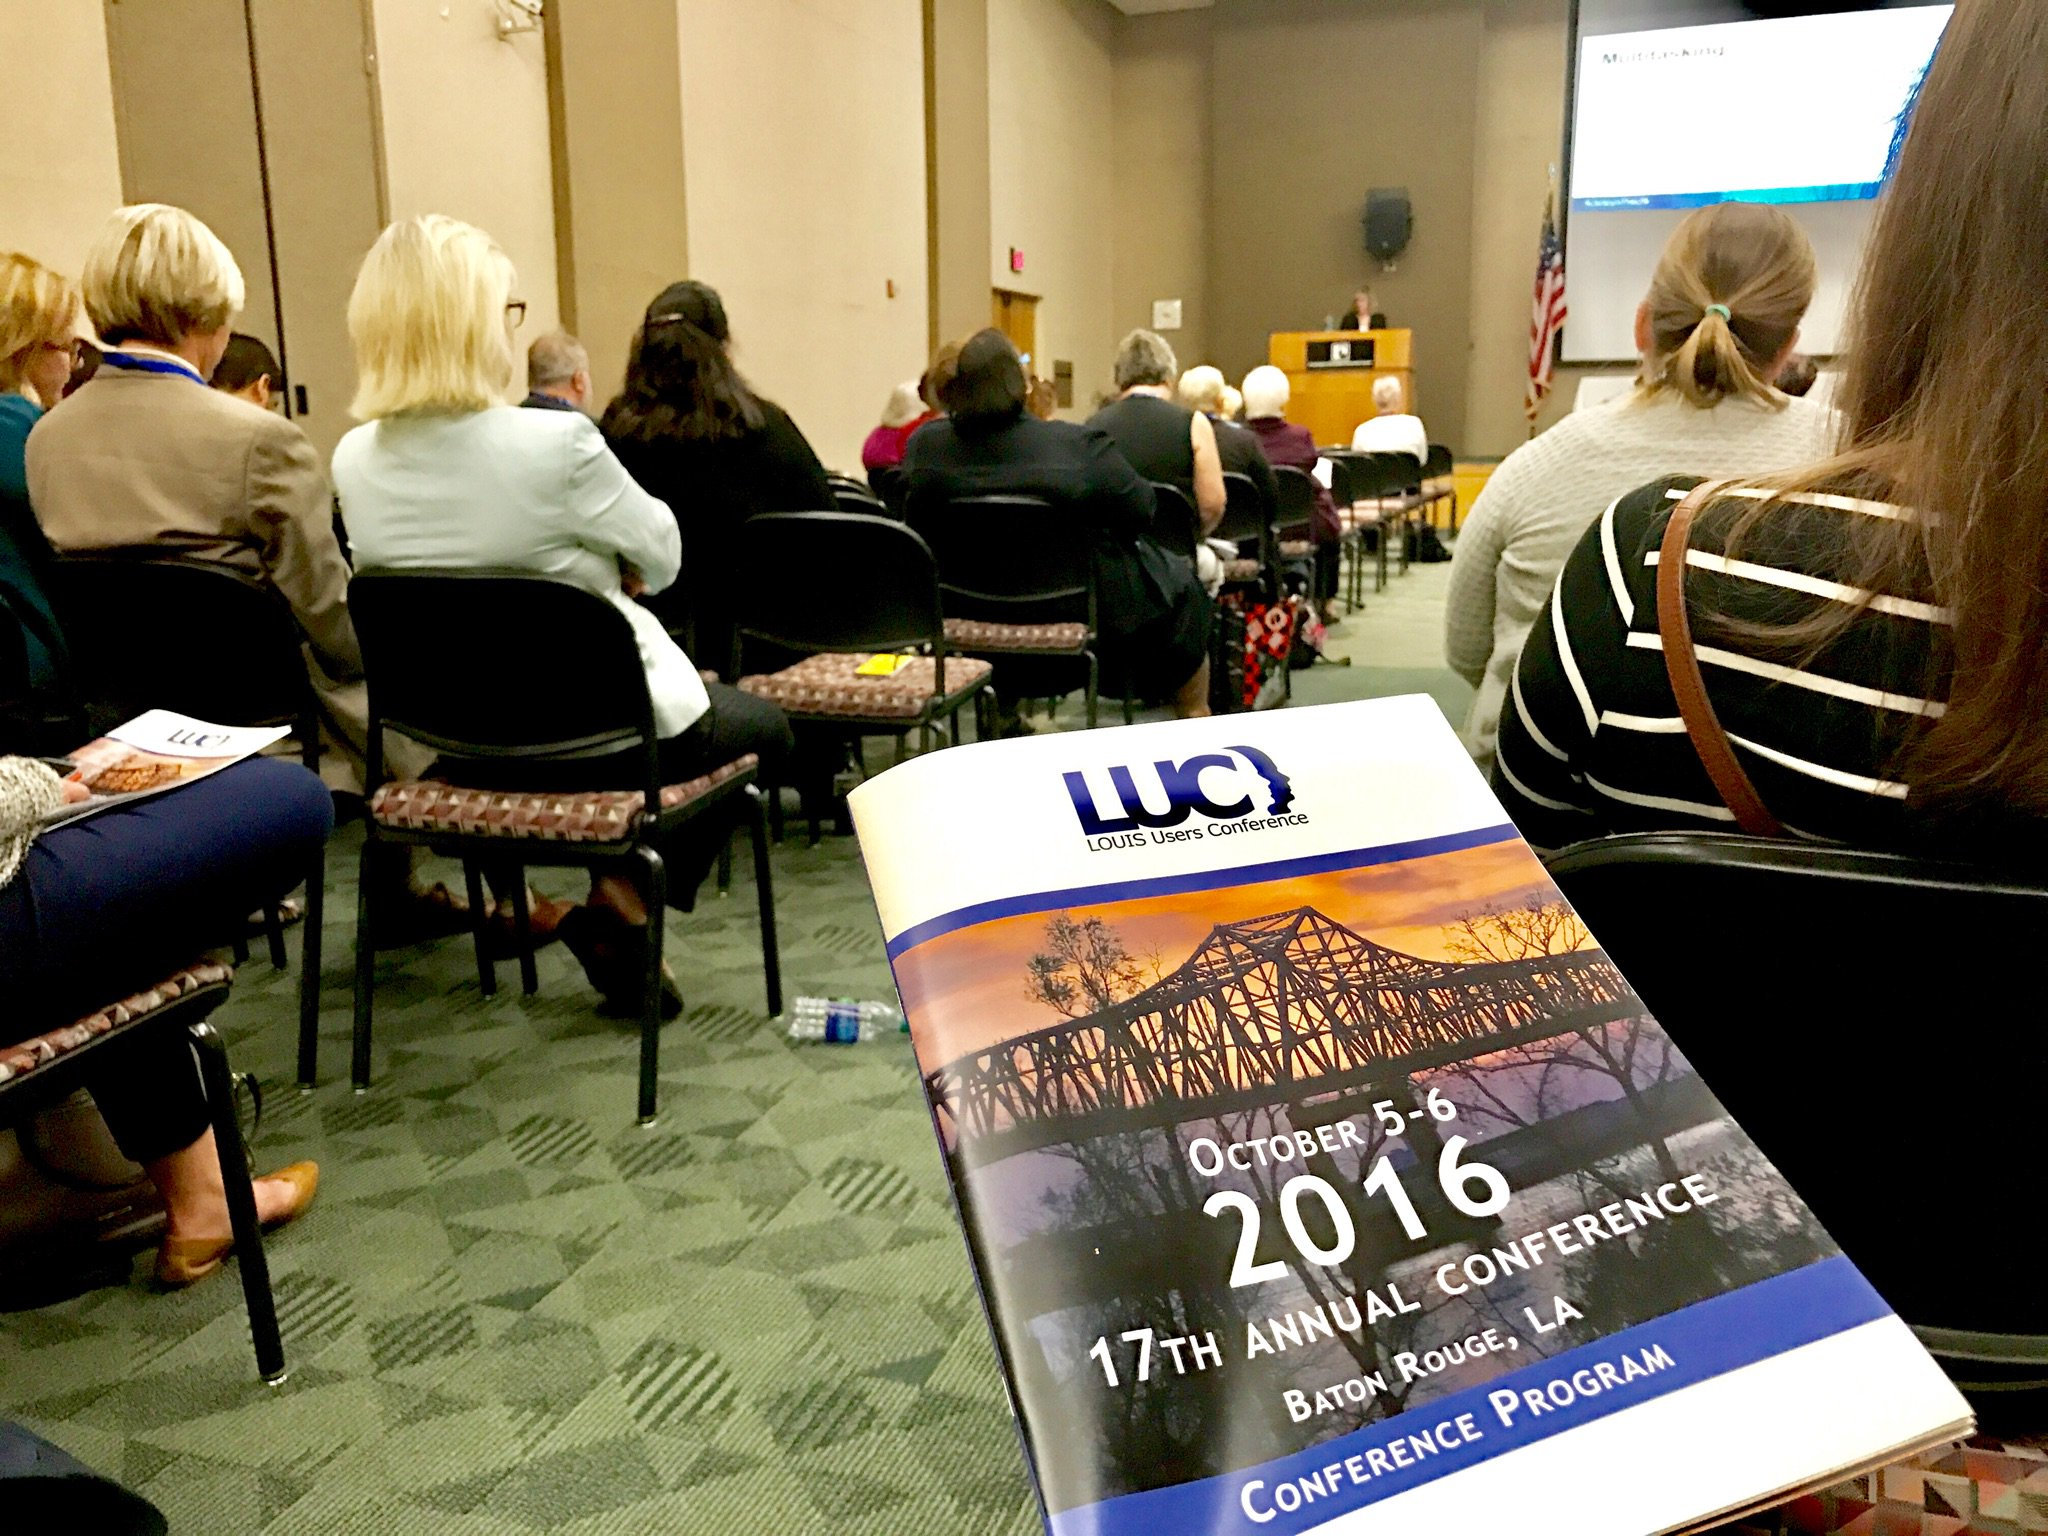 #LOUIS Users 17th Annual Conference #louisuc16 #happeningnow #BatonRouge @louislibraries #lahighered #Innovation https://t.co/8HgEuxAEtk